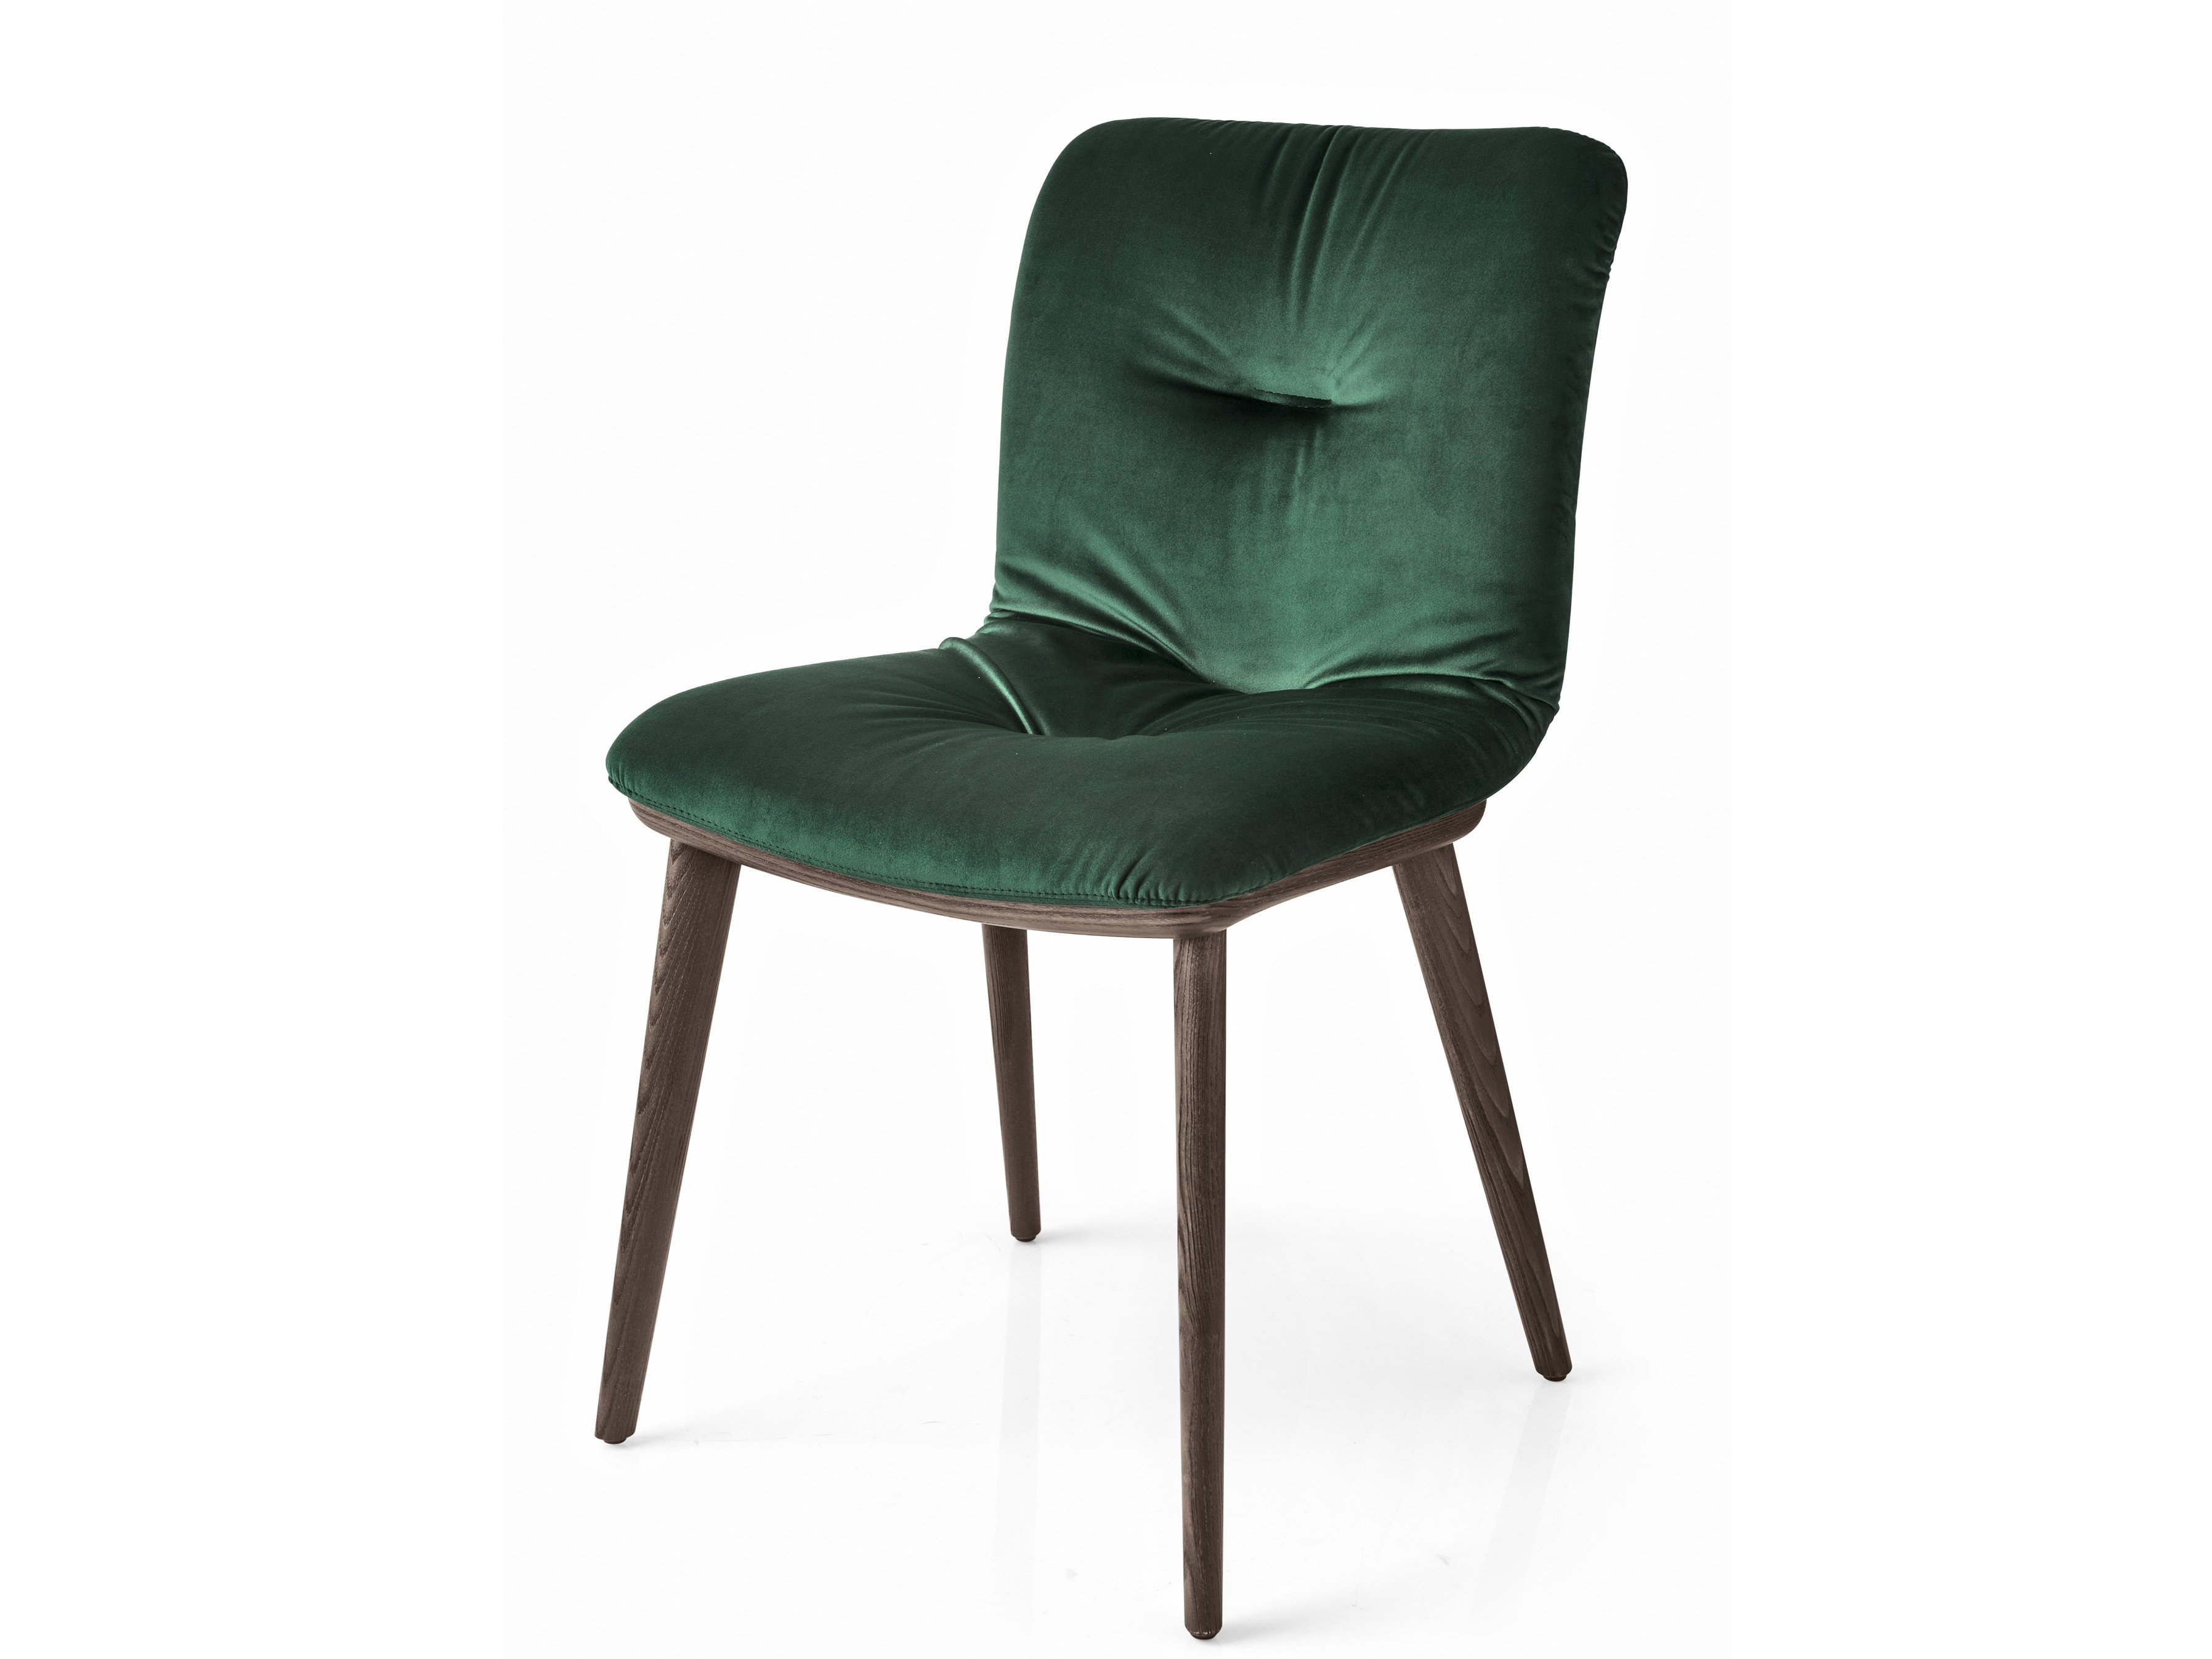 Upholstered Fabric Chair Annie Soft By Calligaris Design Edi E Paolo Ciani Design